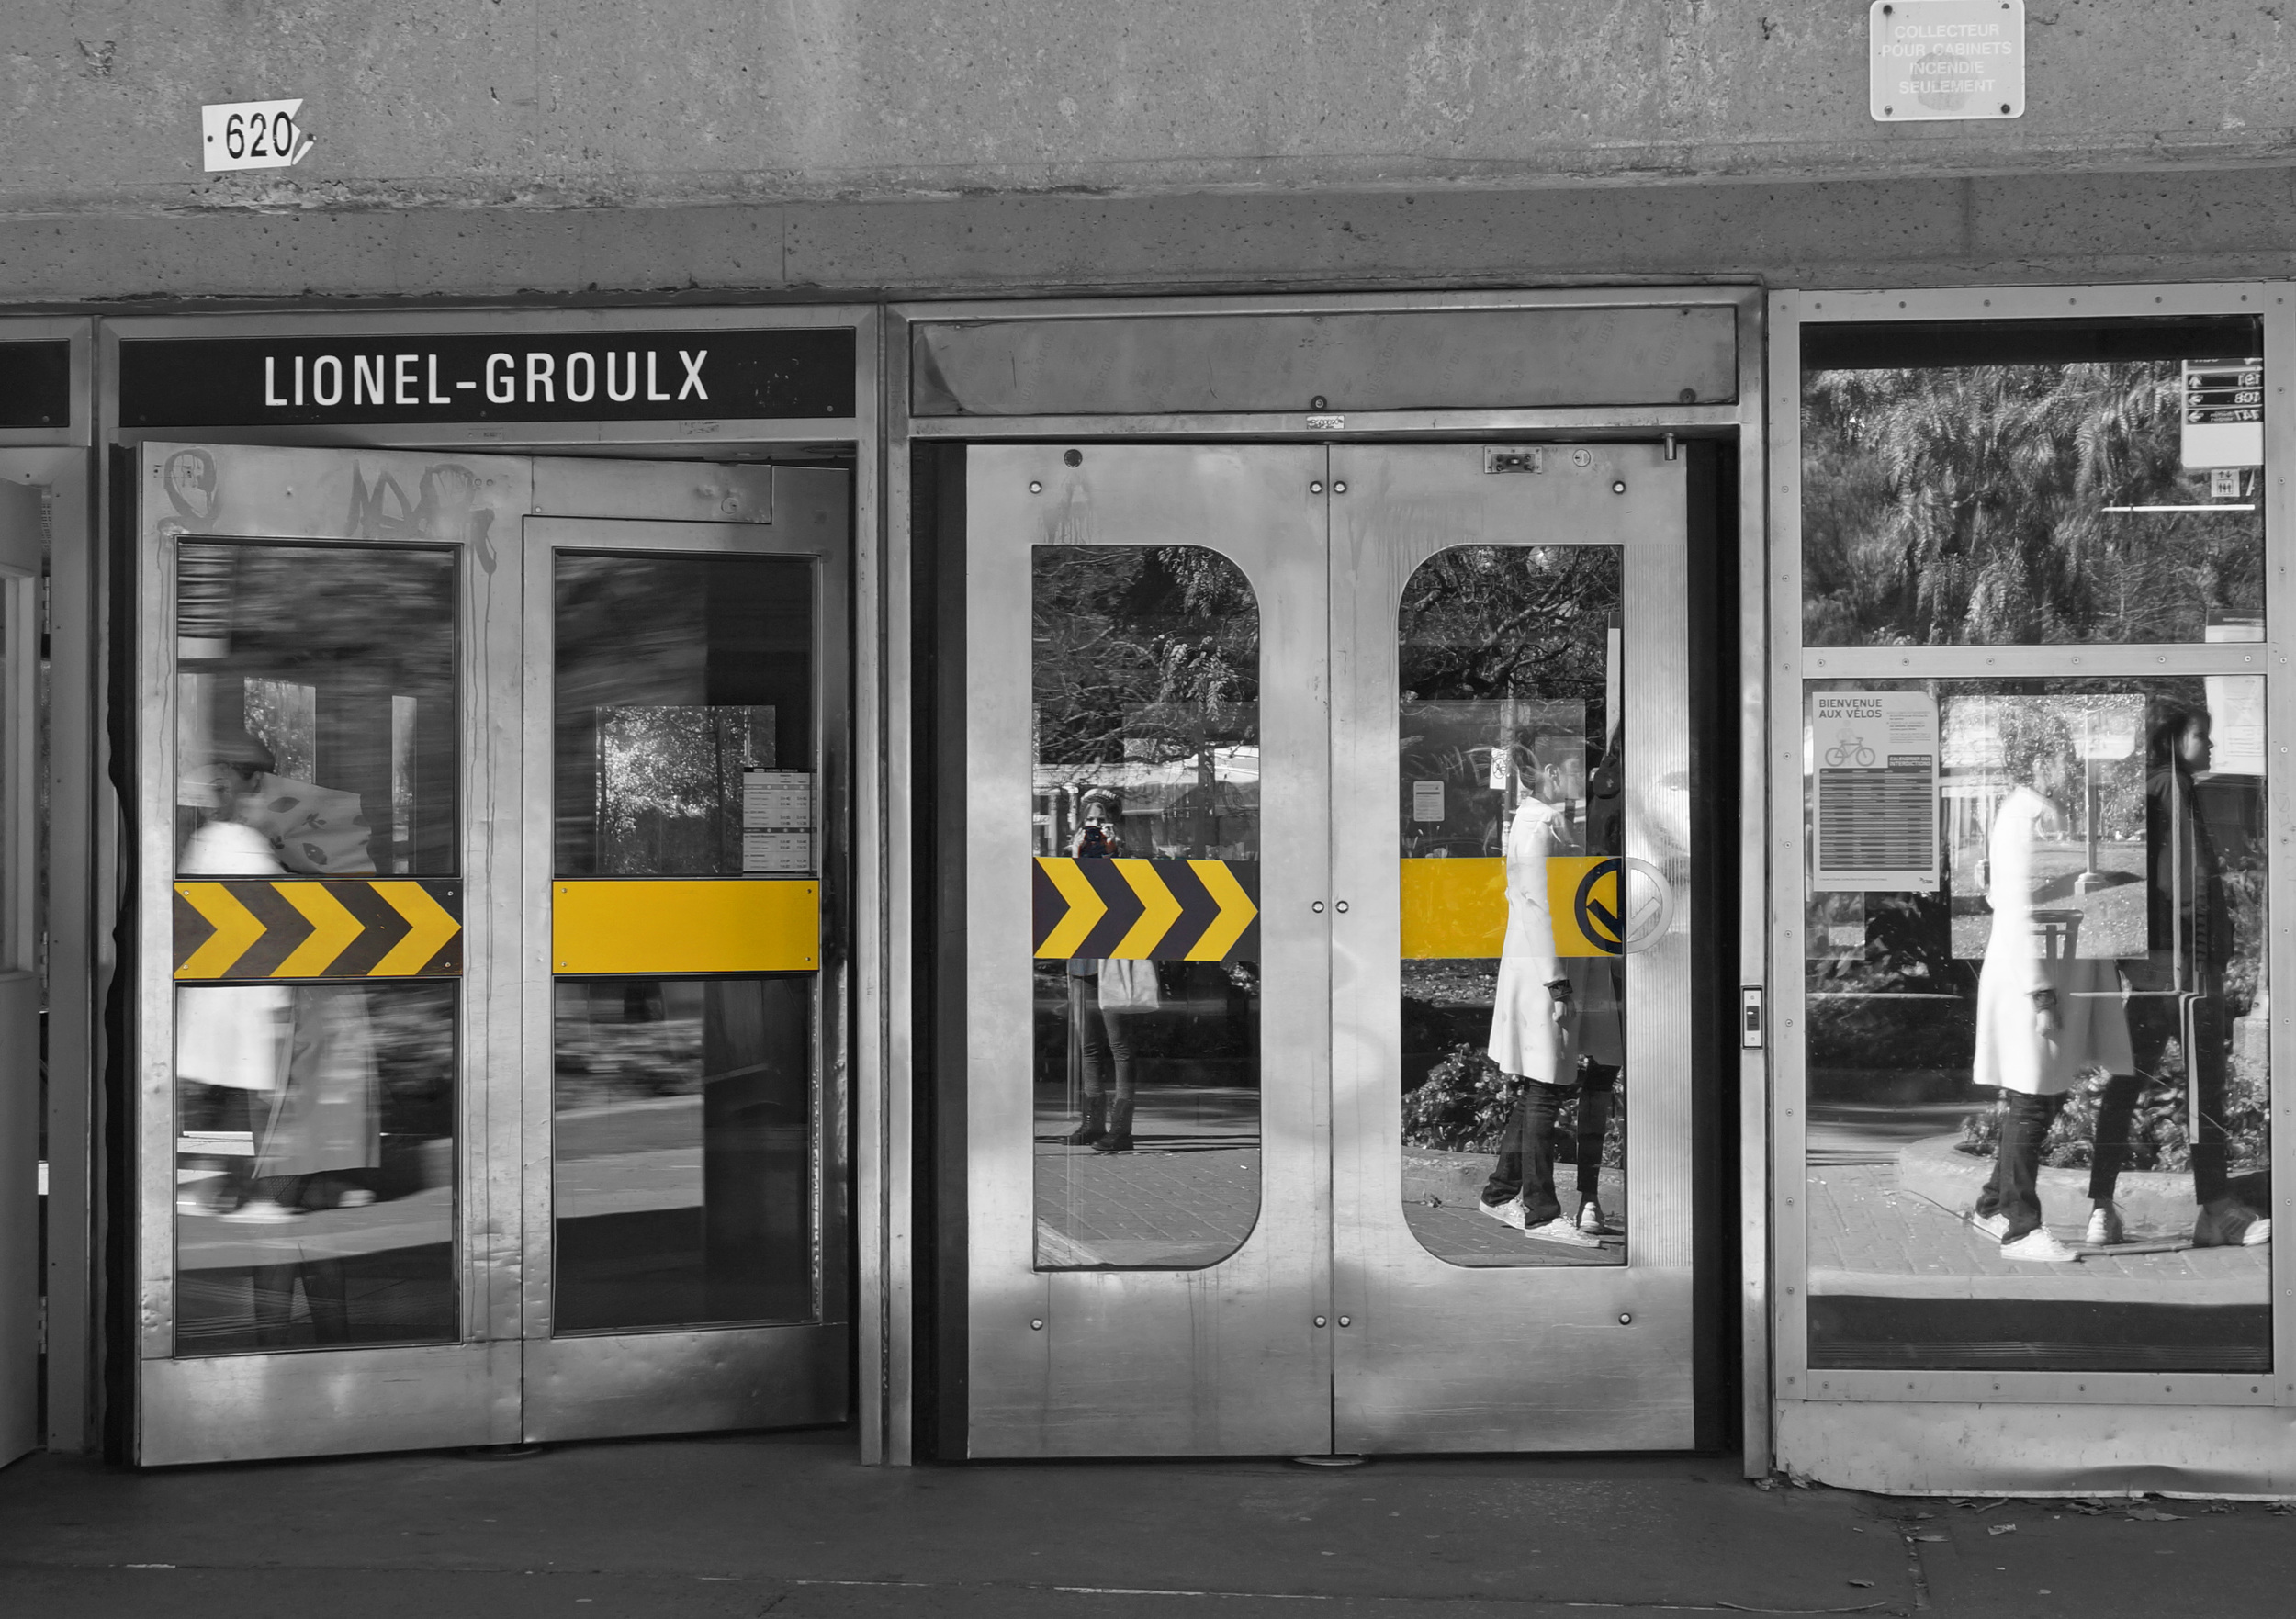 Lionel-Groulx Subway Stop